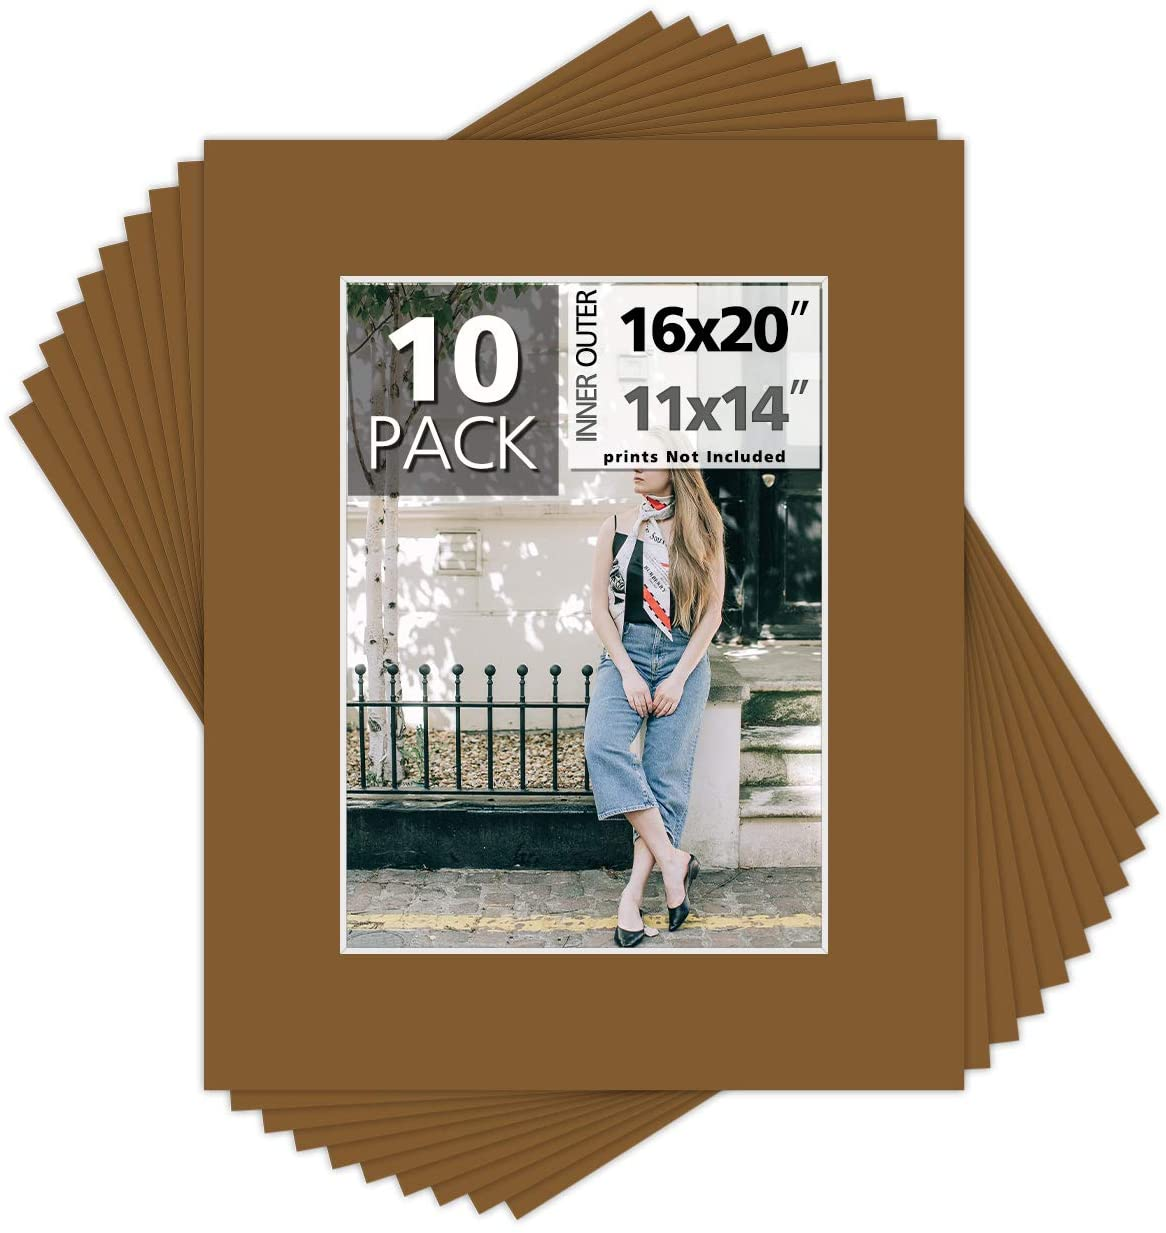 Mat Board Center, Pack of 10, 16x20 for 11x14 Photo Picture Mats - Acid Free, 4-ply Thickness, White Core - for Pictures, Photos, Framing, Smokey Tan